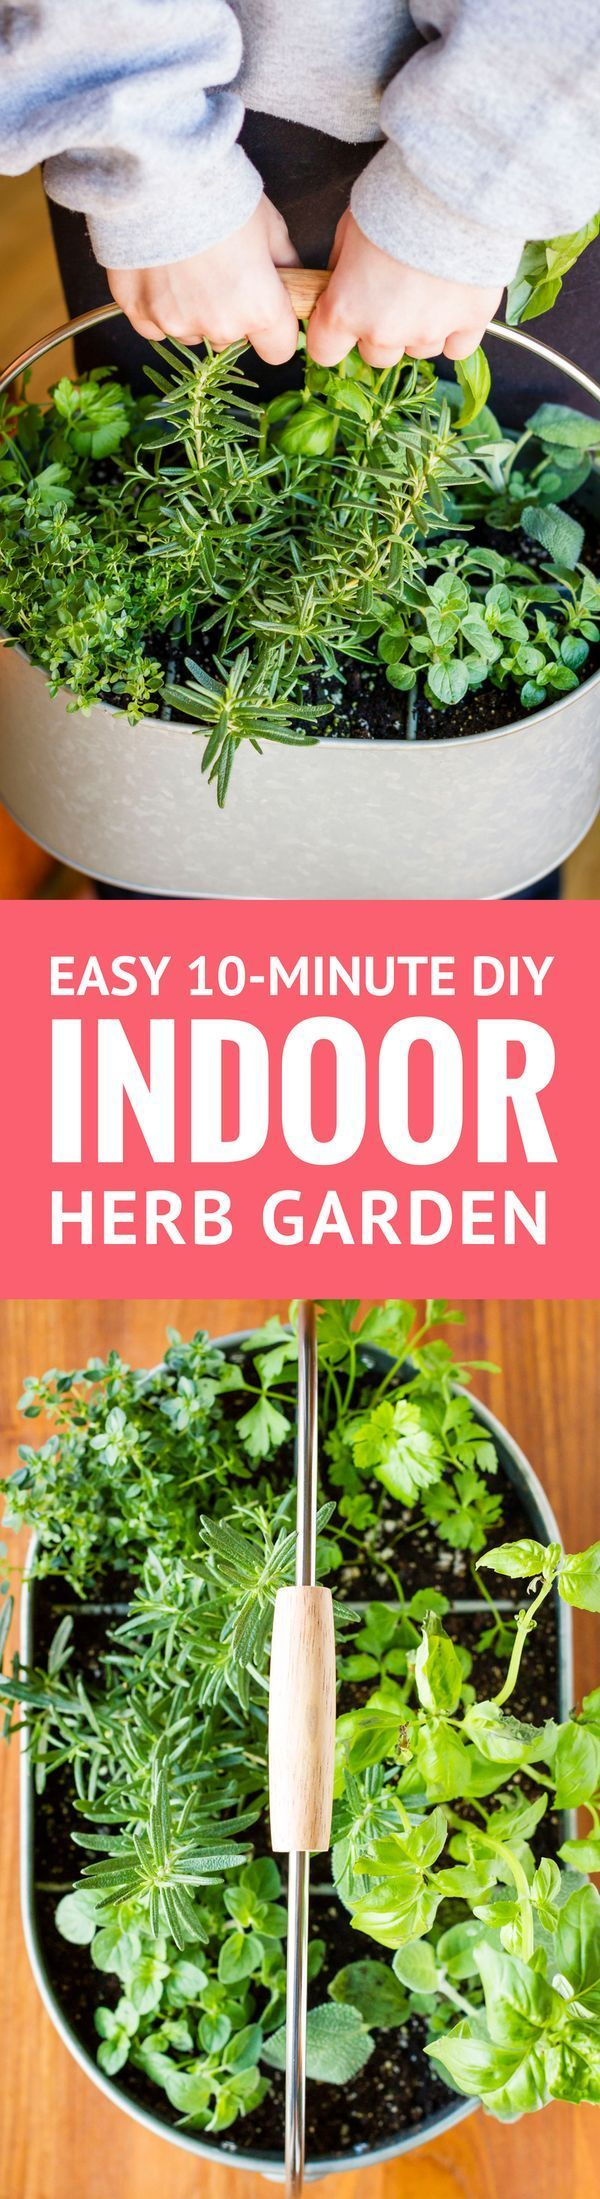 Easy Indoor Herb Garden -- I was an indoor container gardening failure, until I decided a different approach was in order. Find out how you can create this simple DIY indoor herb garden in under 10 minutes! | http://unsophisticook.com